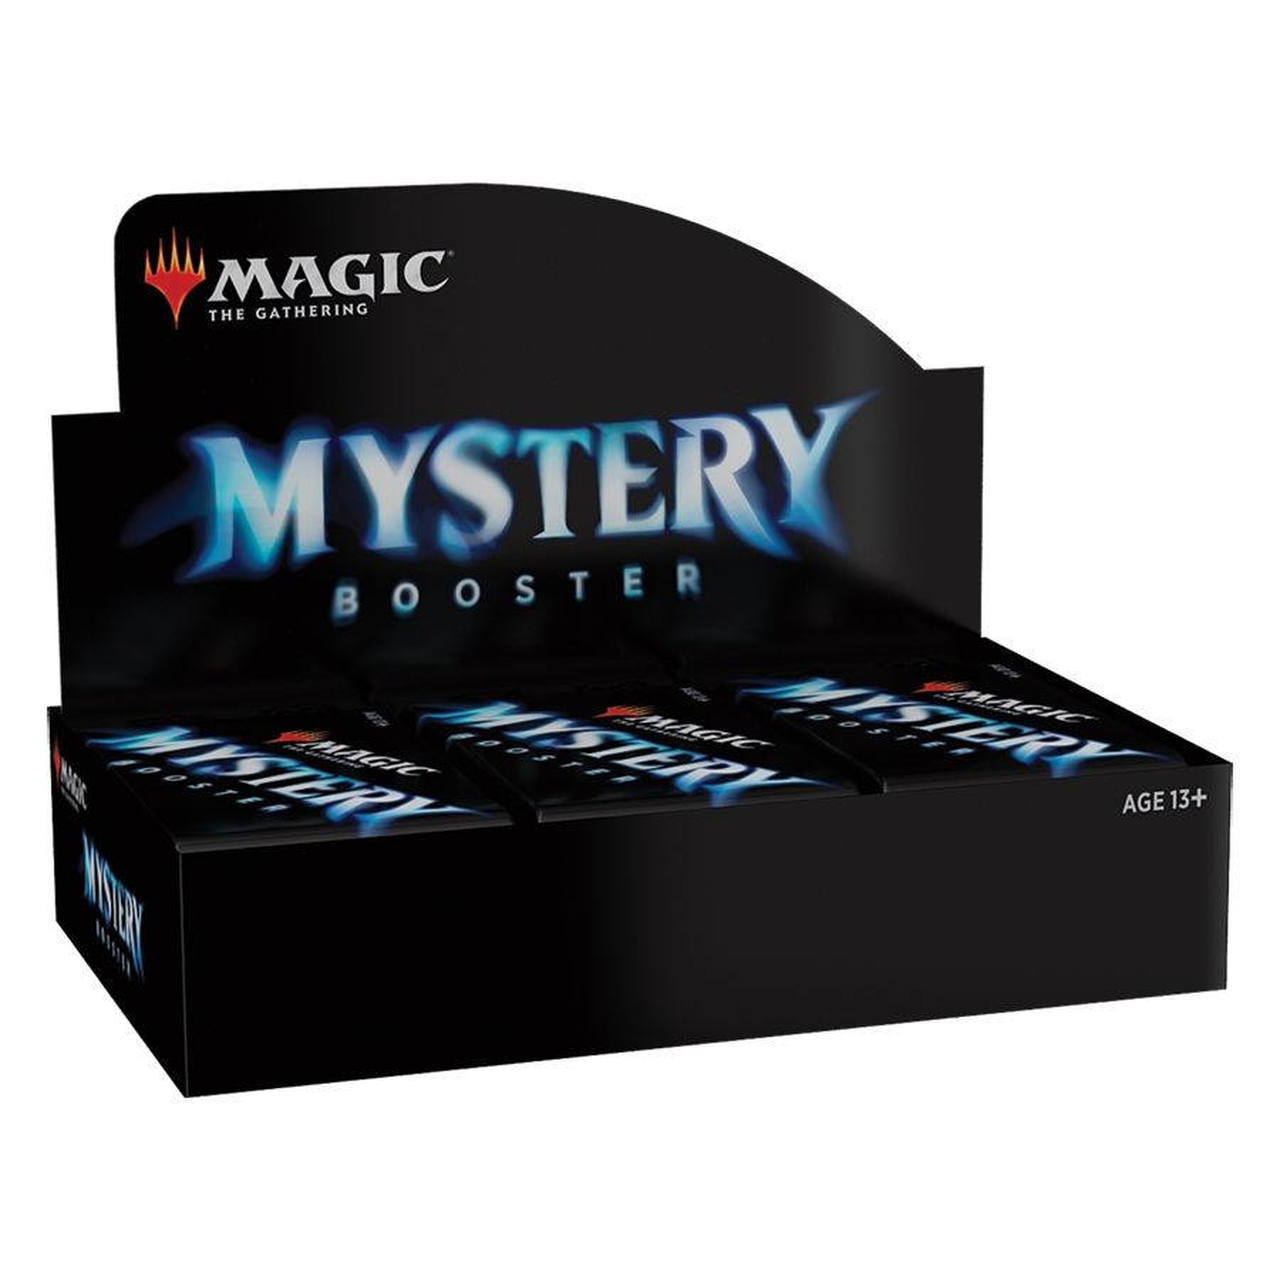 Mystery Boosters: The Most Important Magic Finance Set Of The Year?